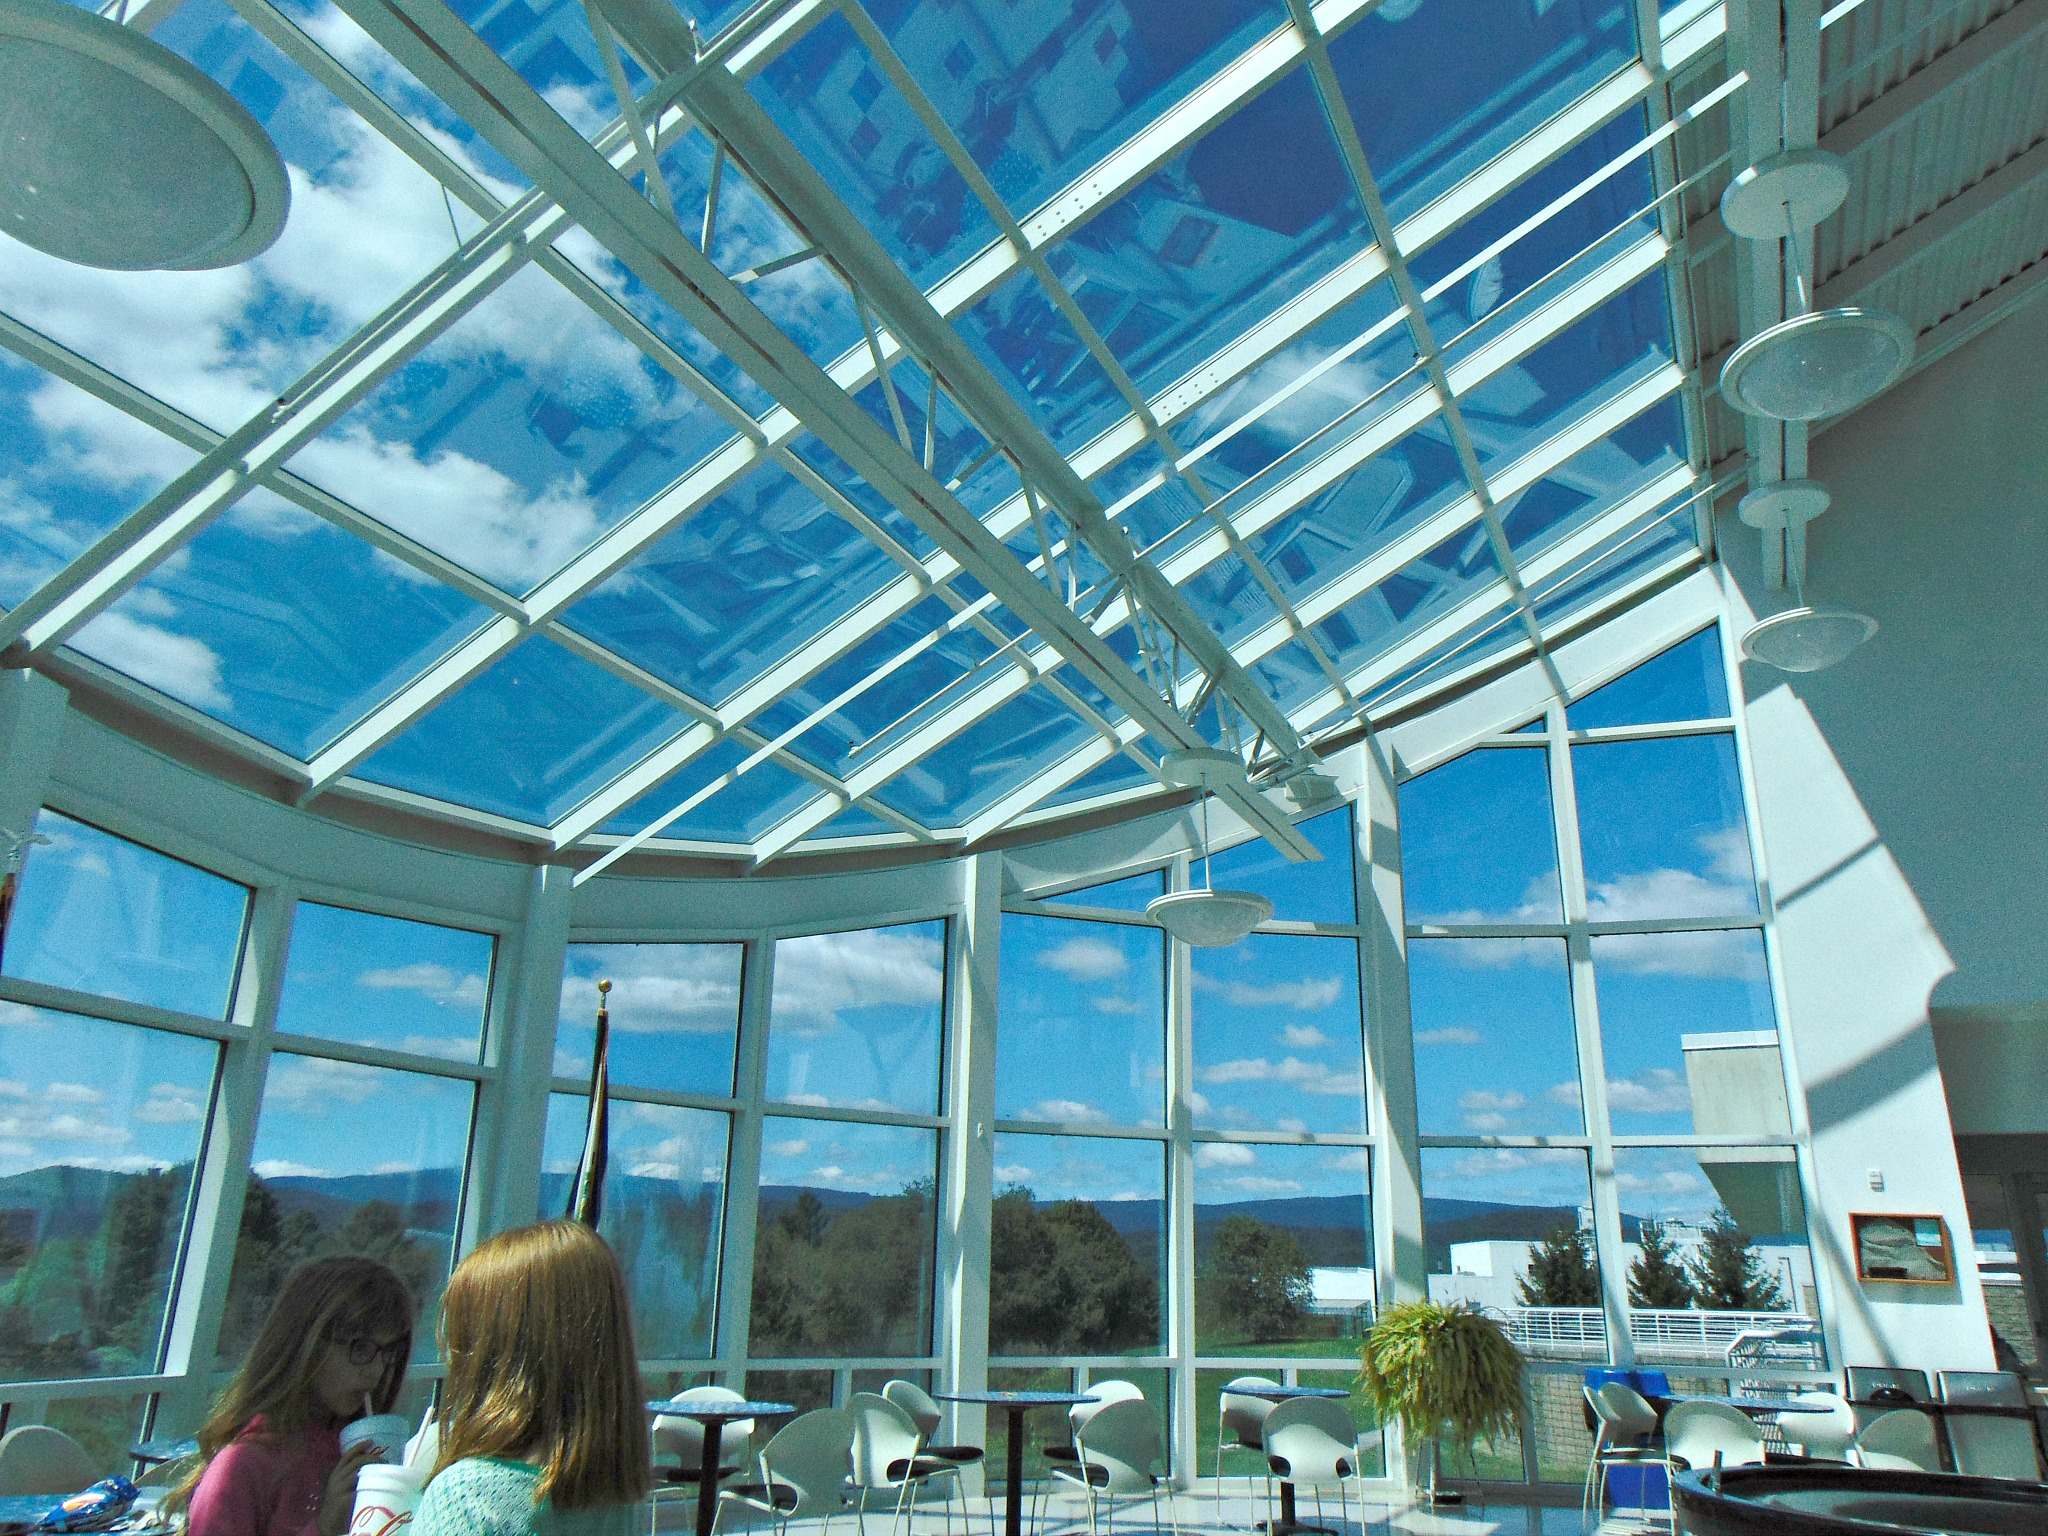 roof-of-the-green-bank-science-center